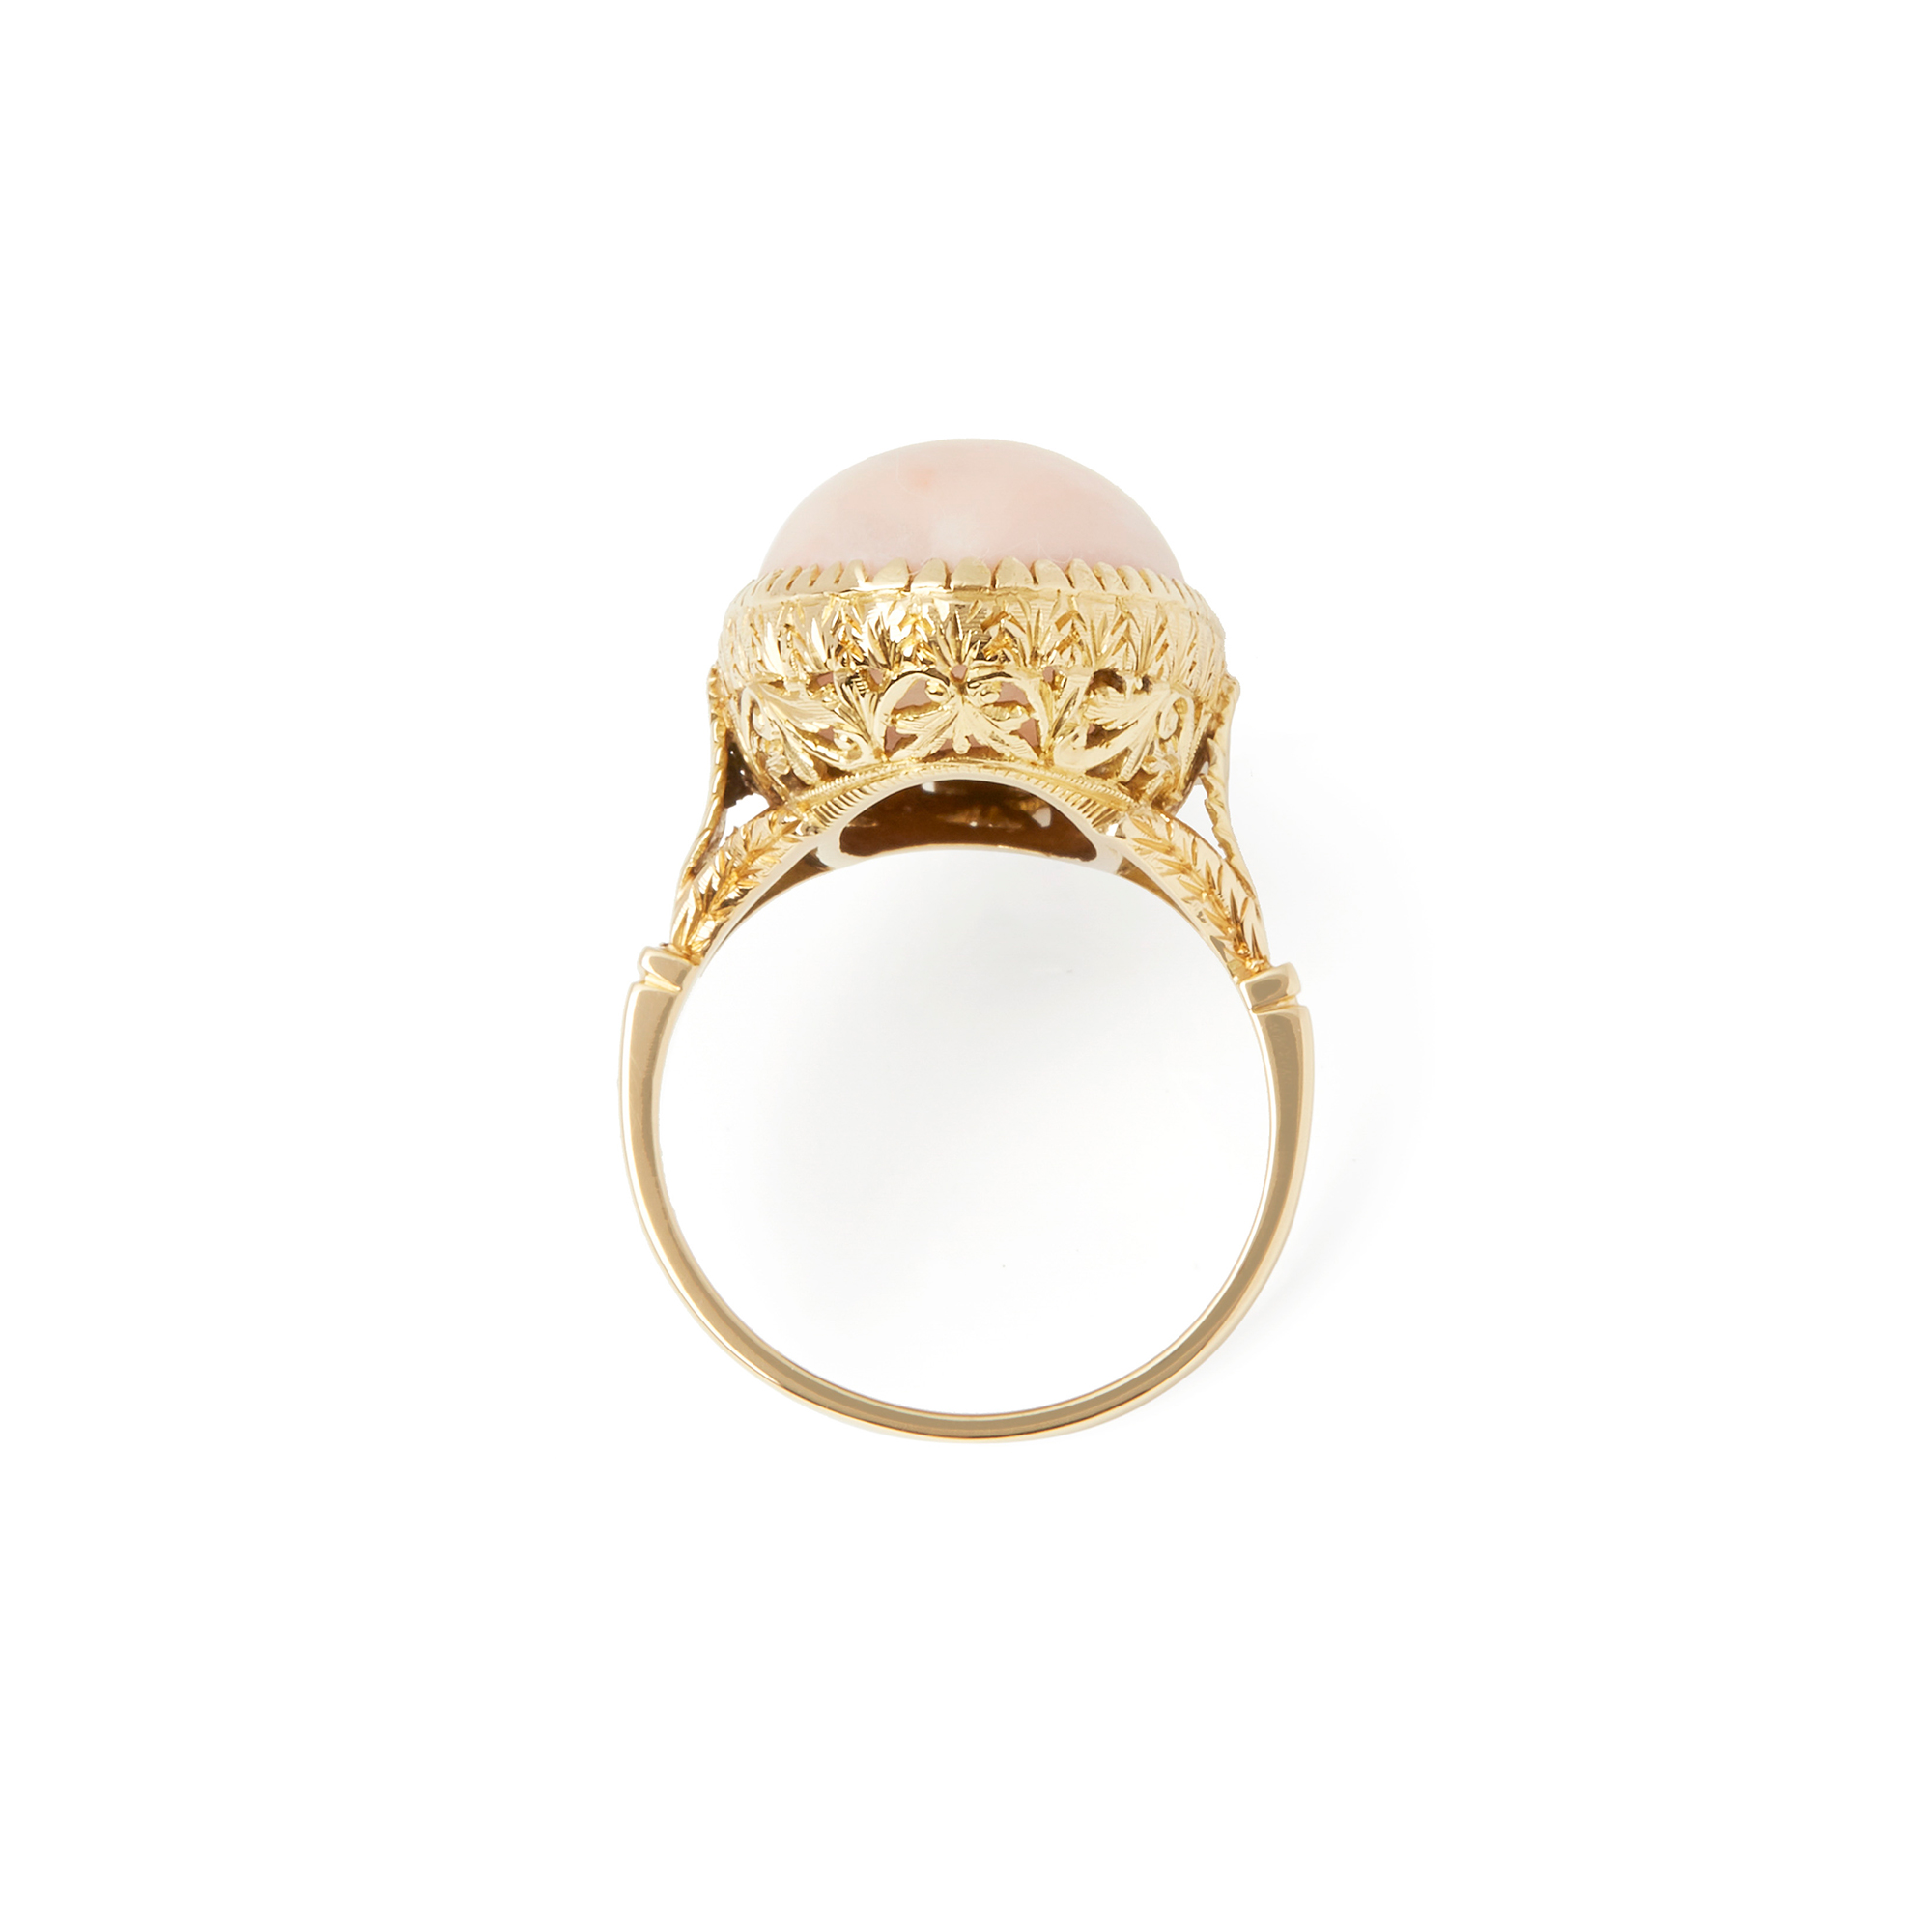 Unbranded 18ct Yellow Gold Pink Coral Ring - Image 3 of 6